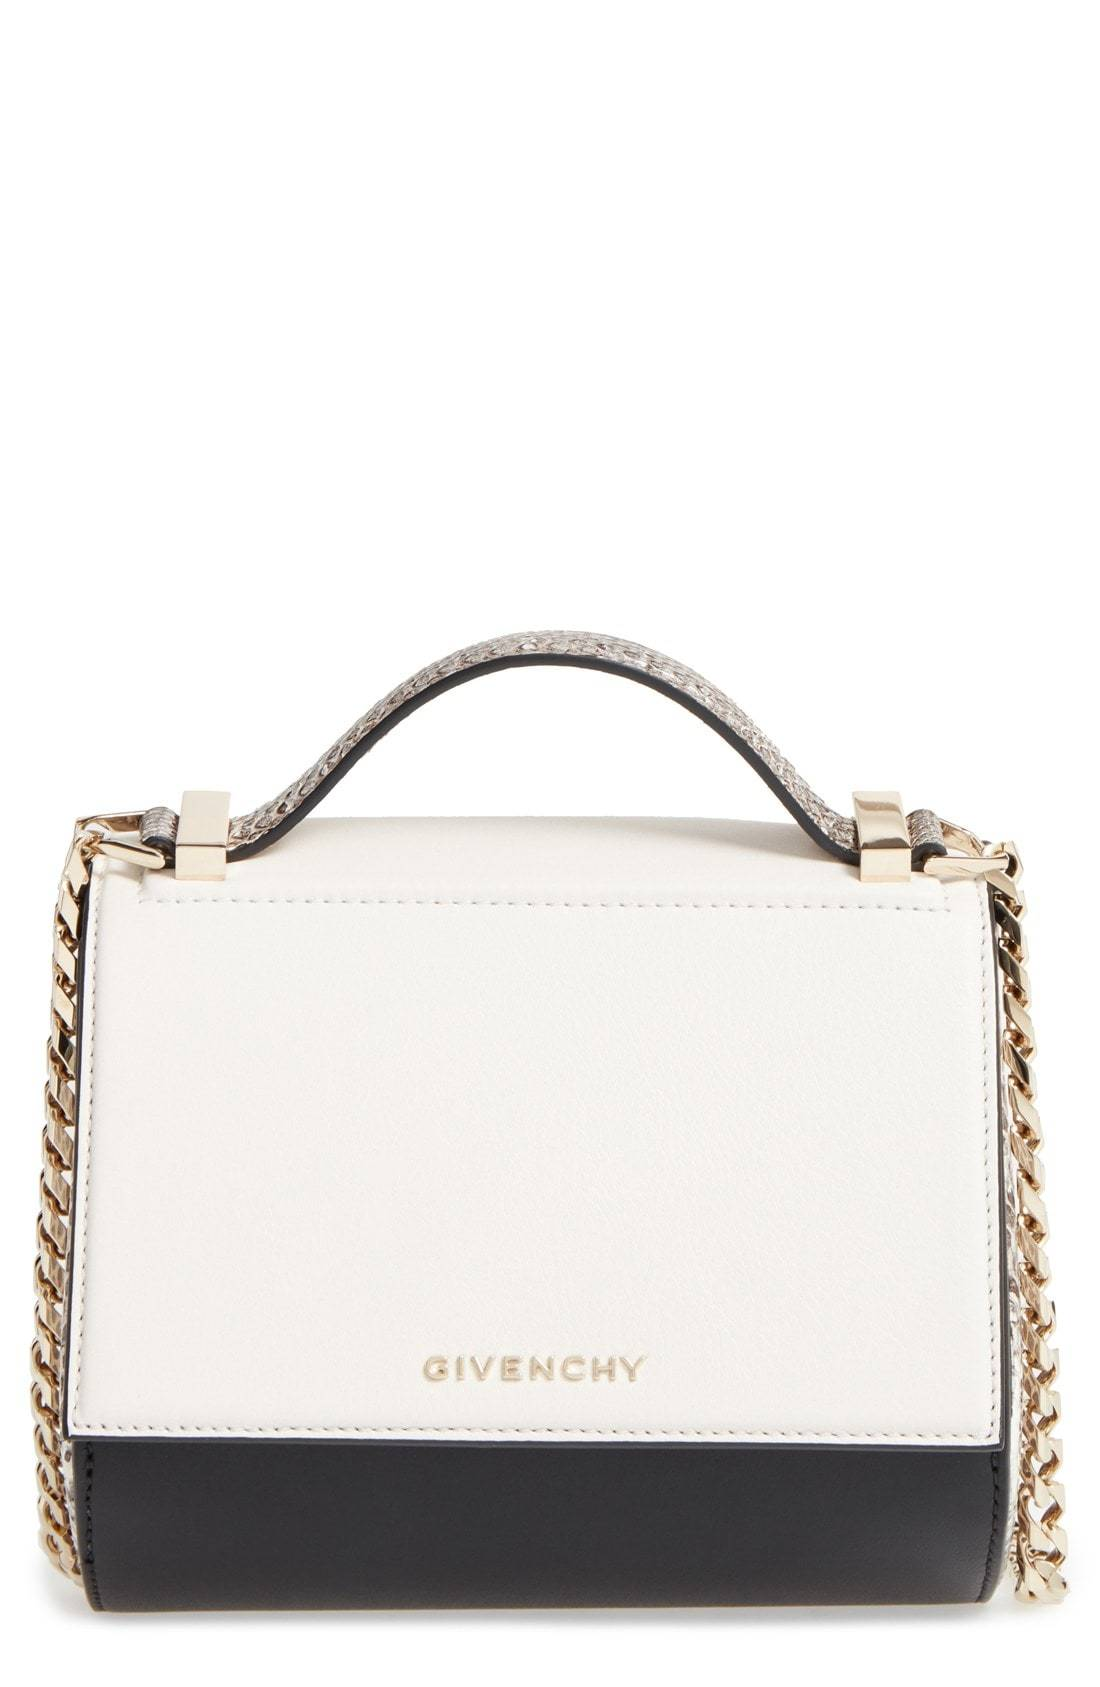 309133c10c Givenchy Pandora Box Genuine Snakeskin Crossbody Bag